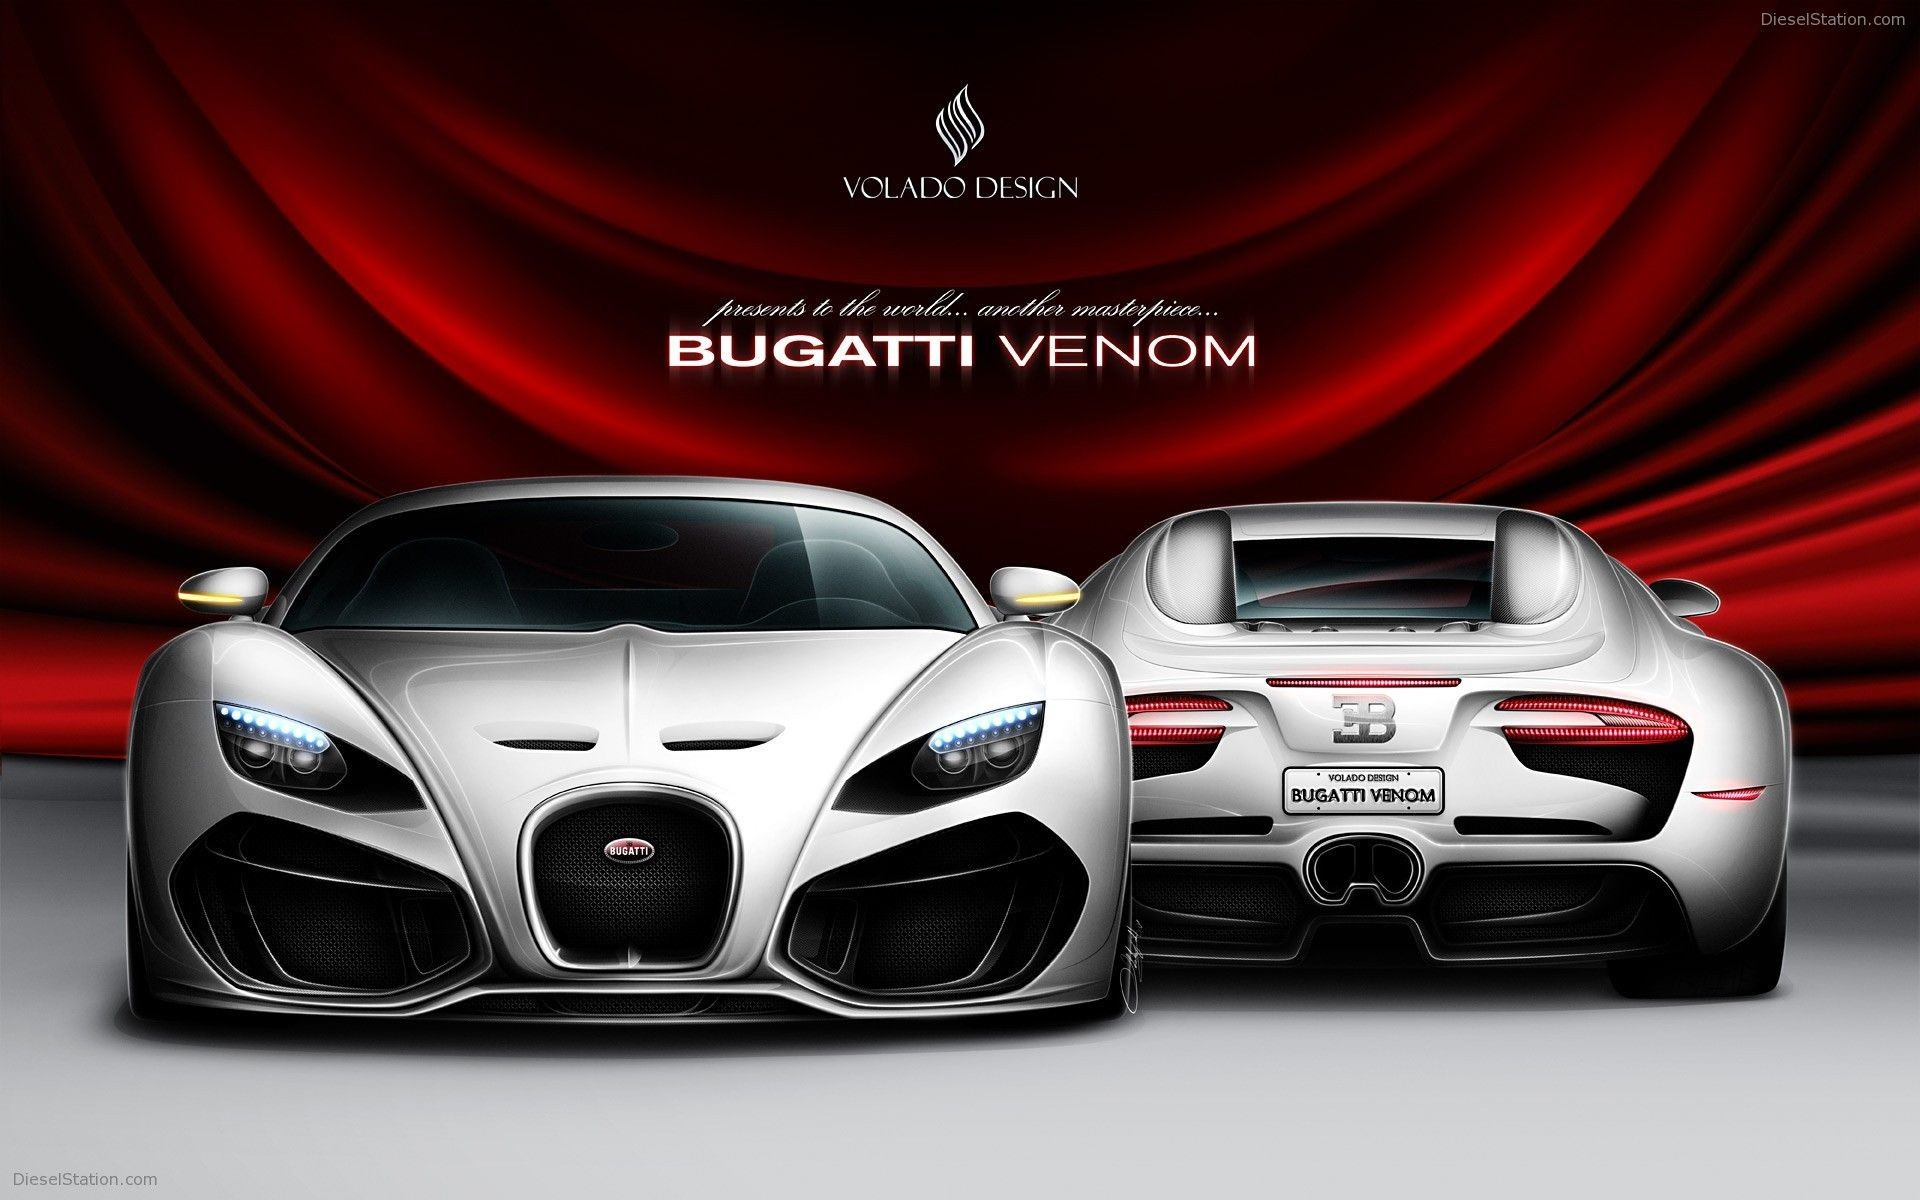 1920x1080 Awesome Hd Exotic Car Wallpapers Images Backgrounds Edition Stugon Of Iphone